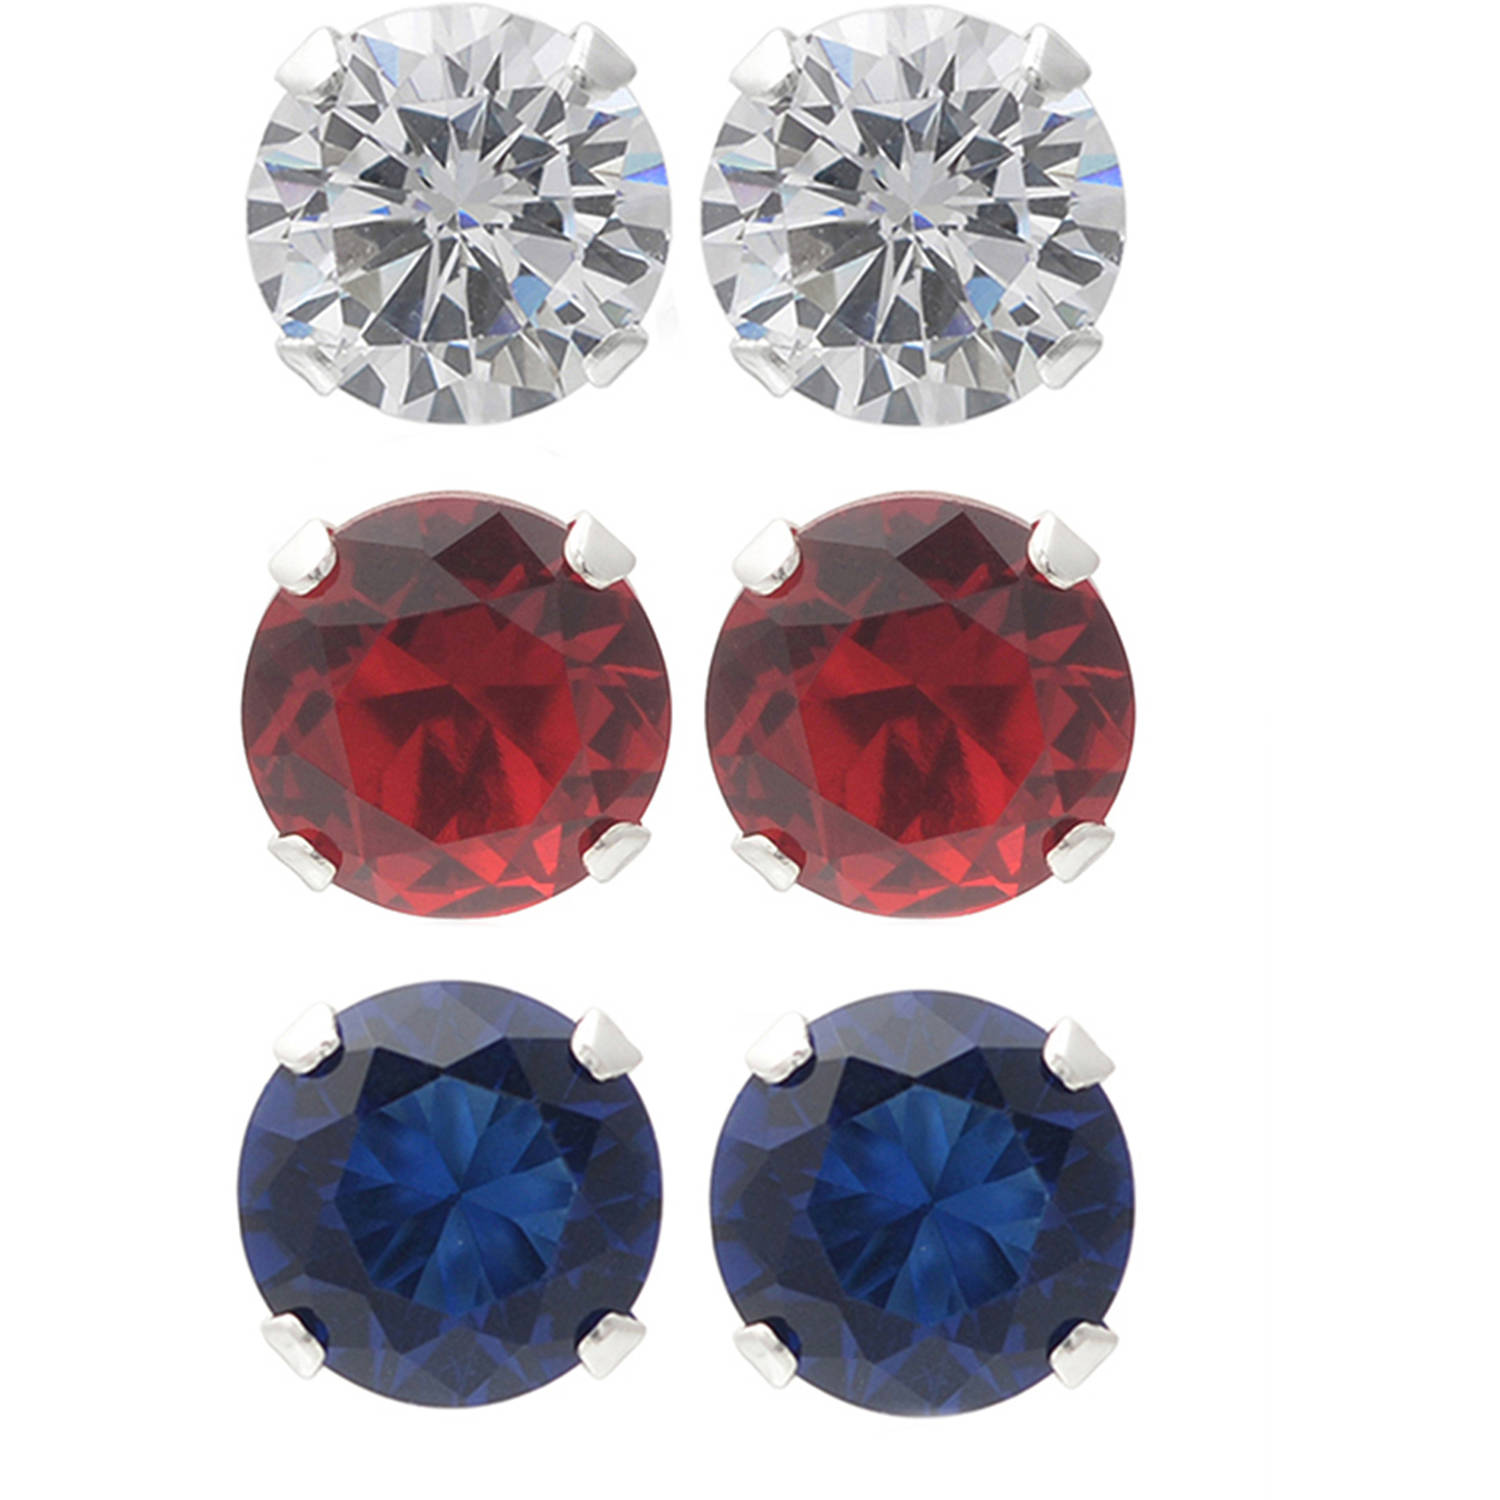 Brinley Co. Women's CZ Sterling Silver Round Stud Earrings Set, 3 Pairs